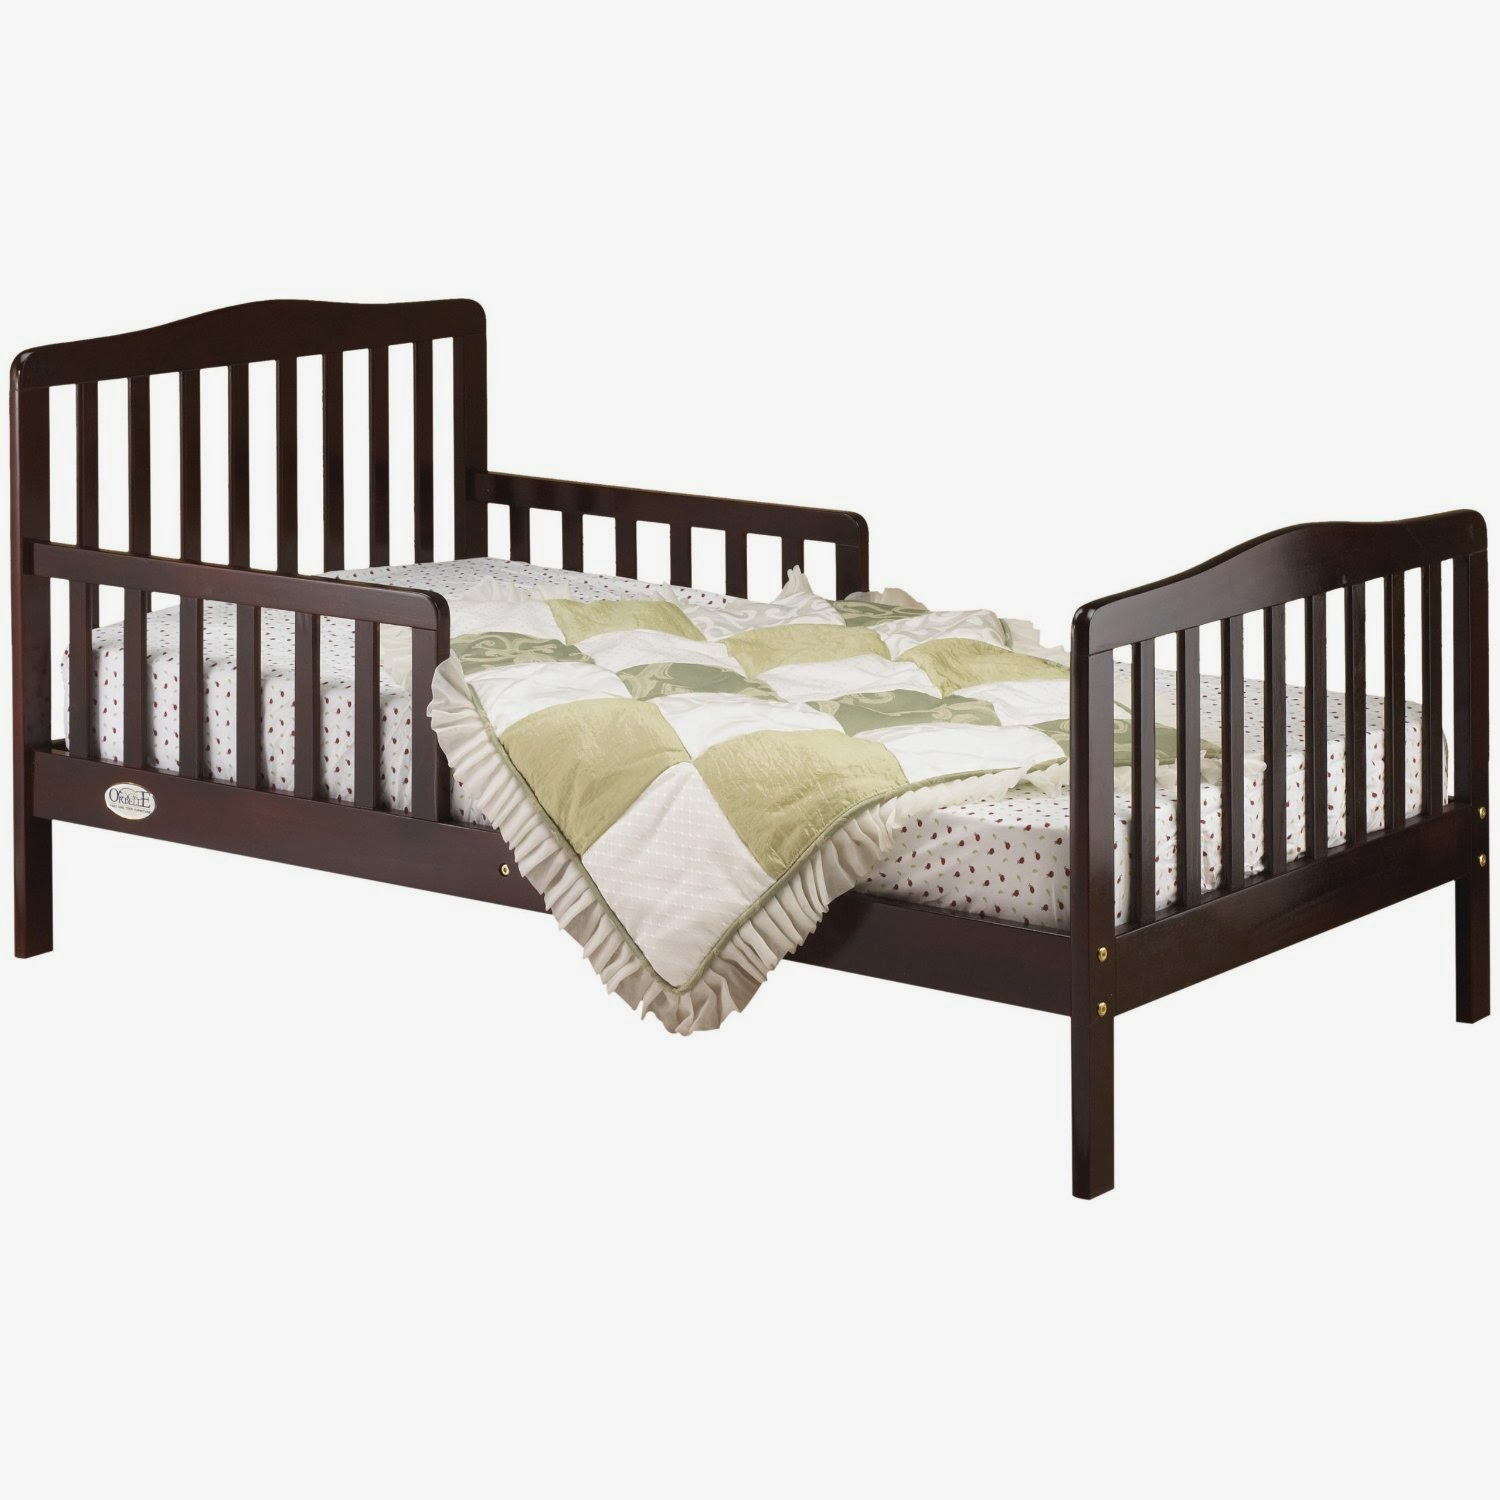 02 - Orbelle 3-6T Toddler Bed